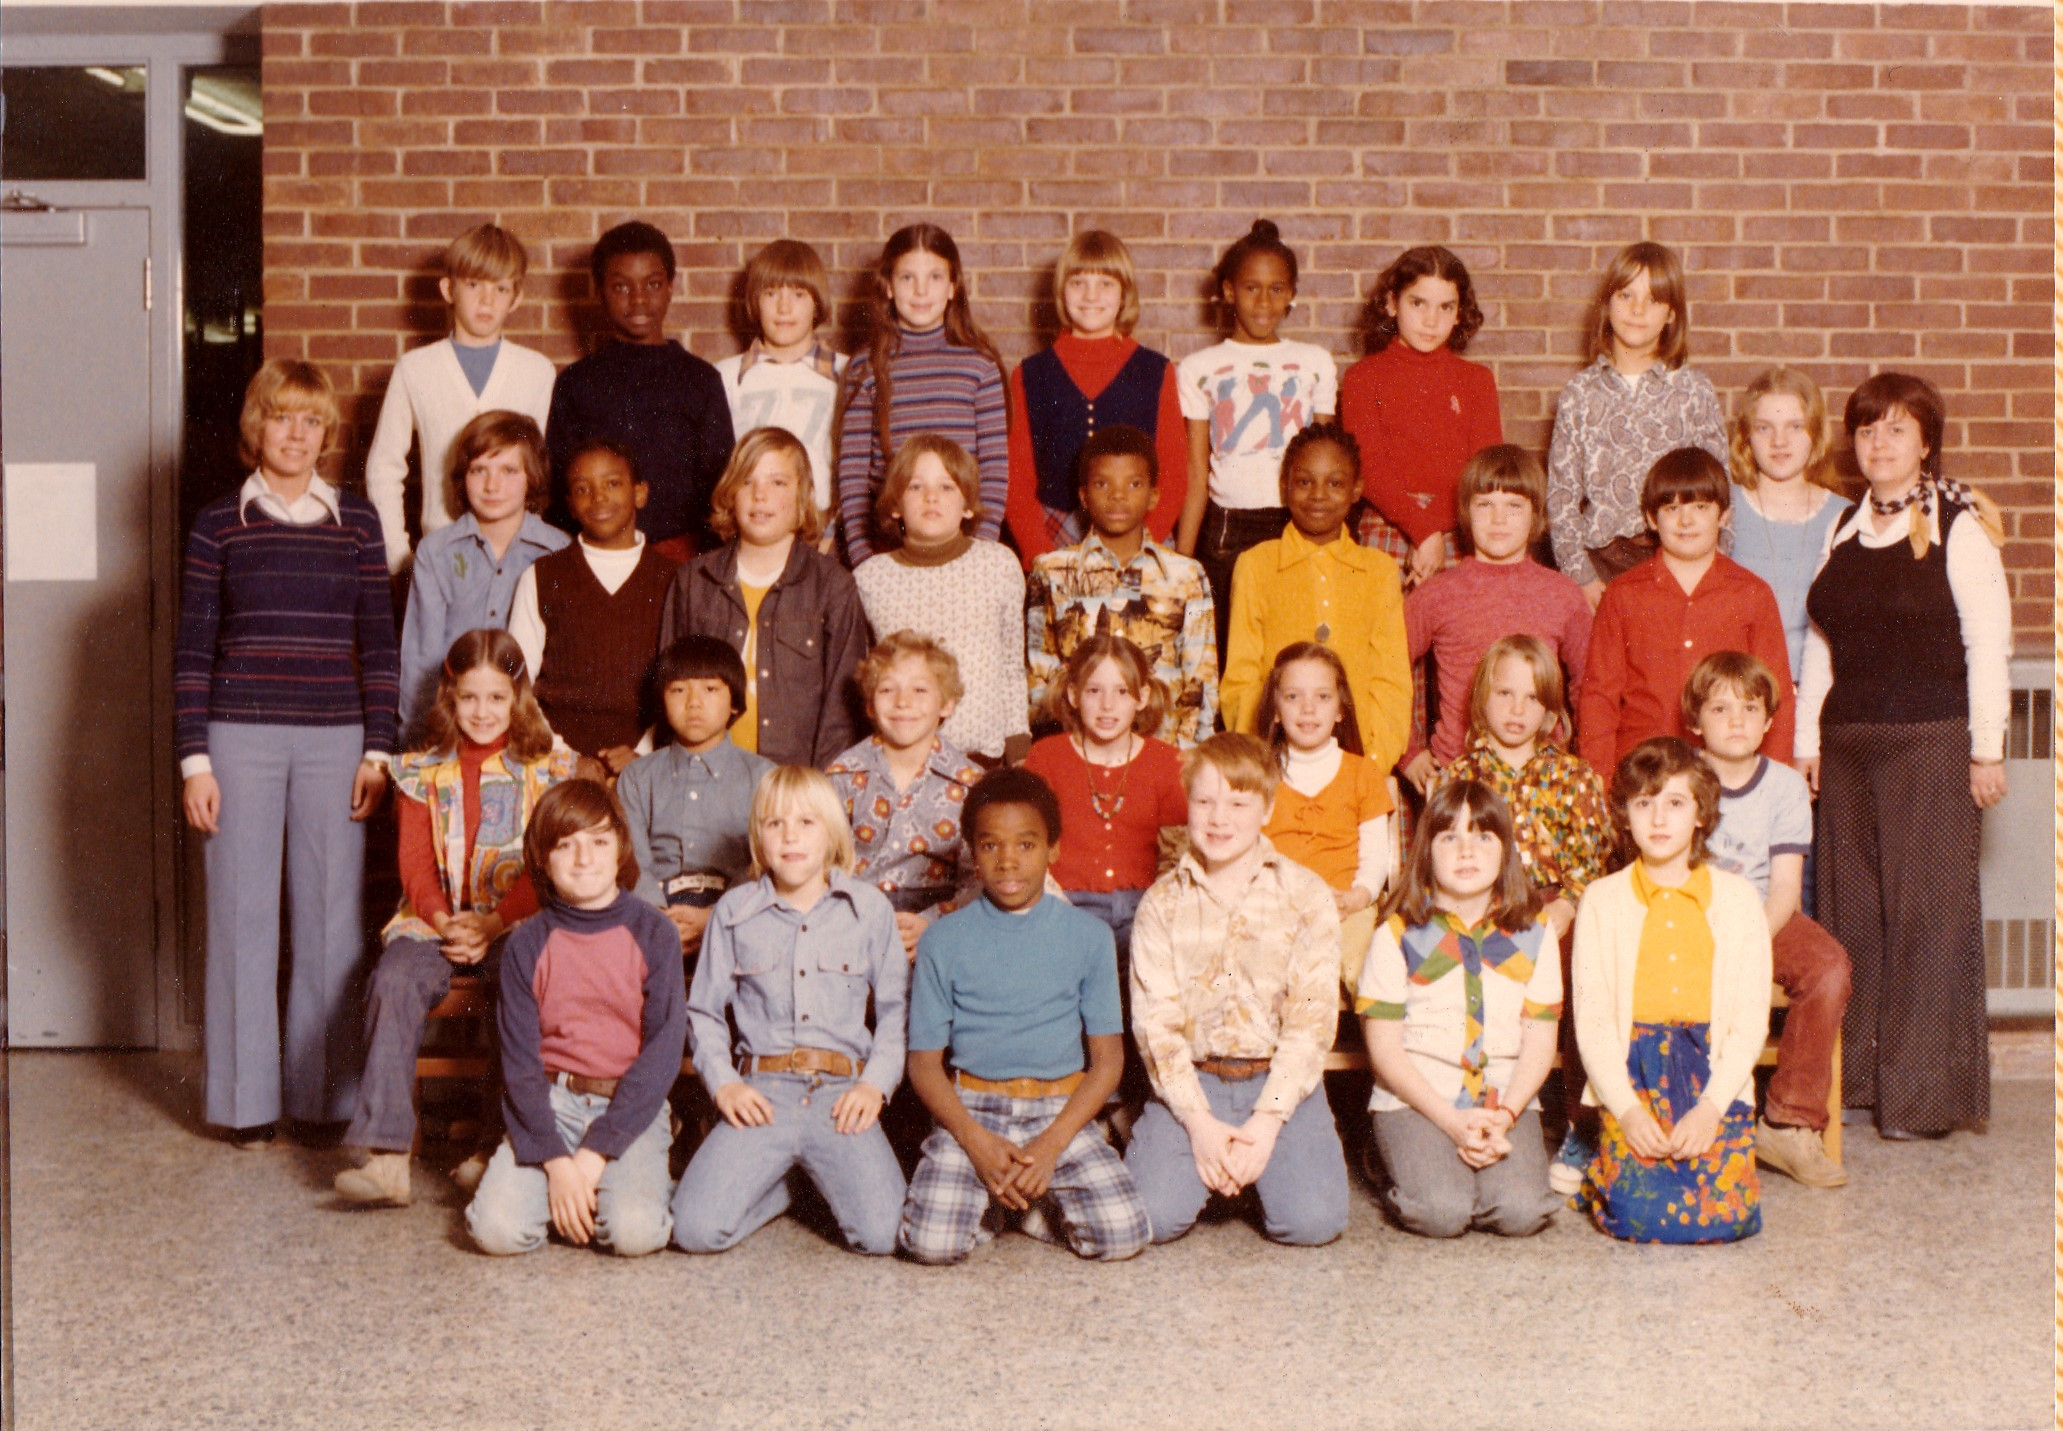 1970s 4th grade class photo from Hillsmere Elementary School